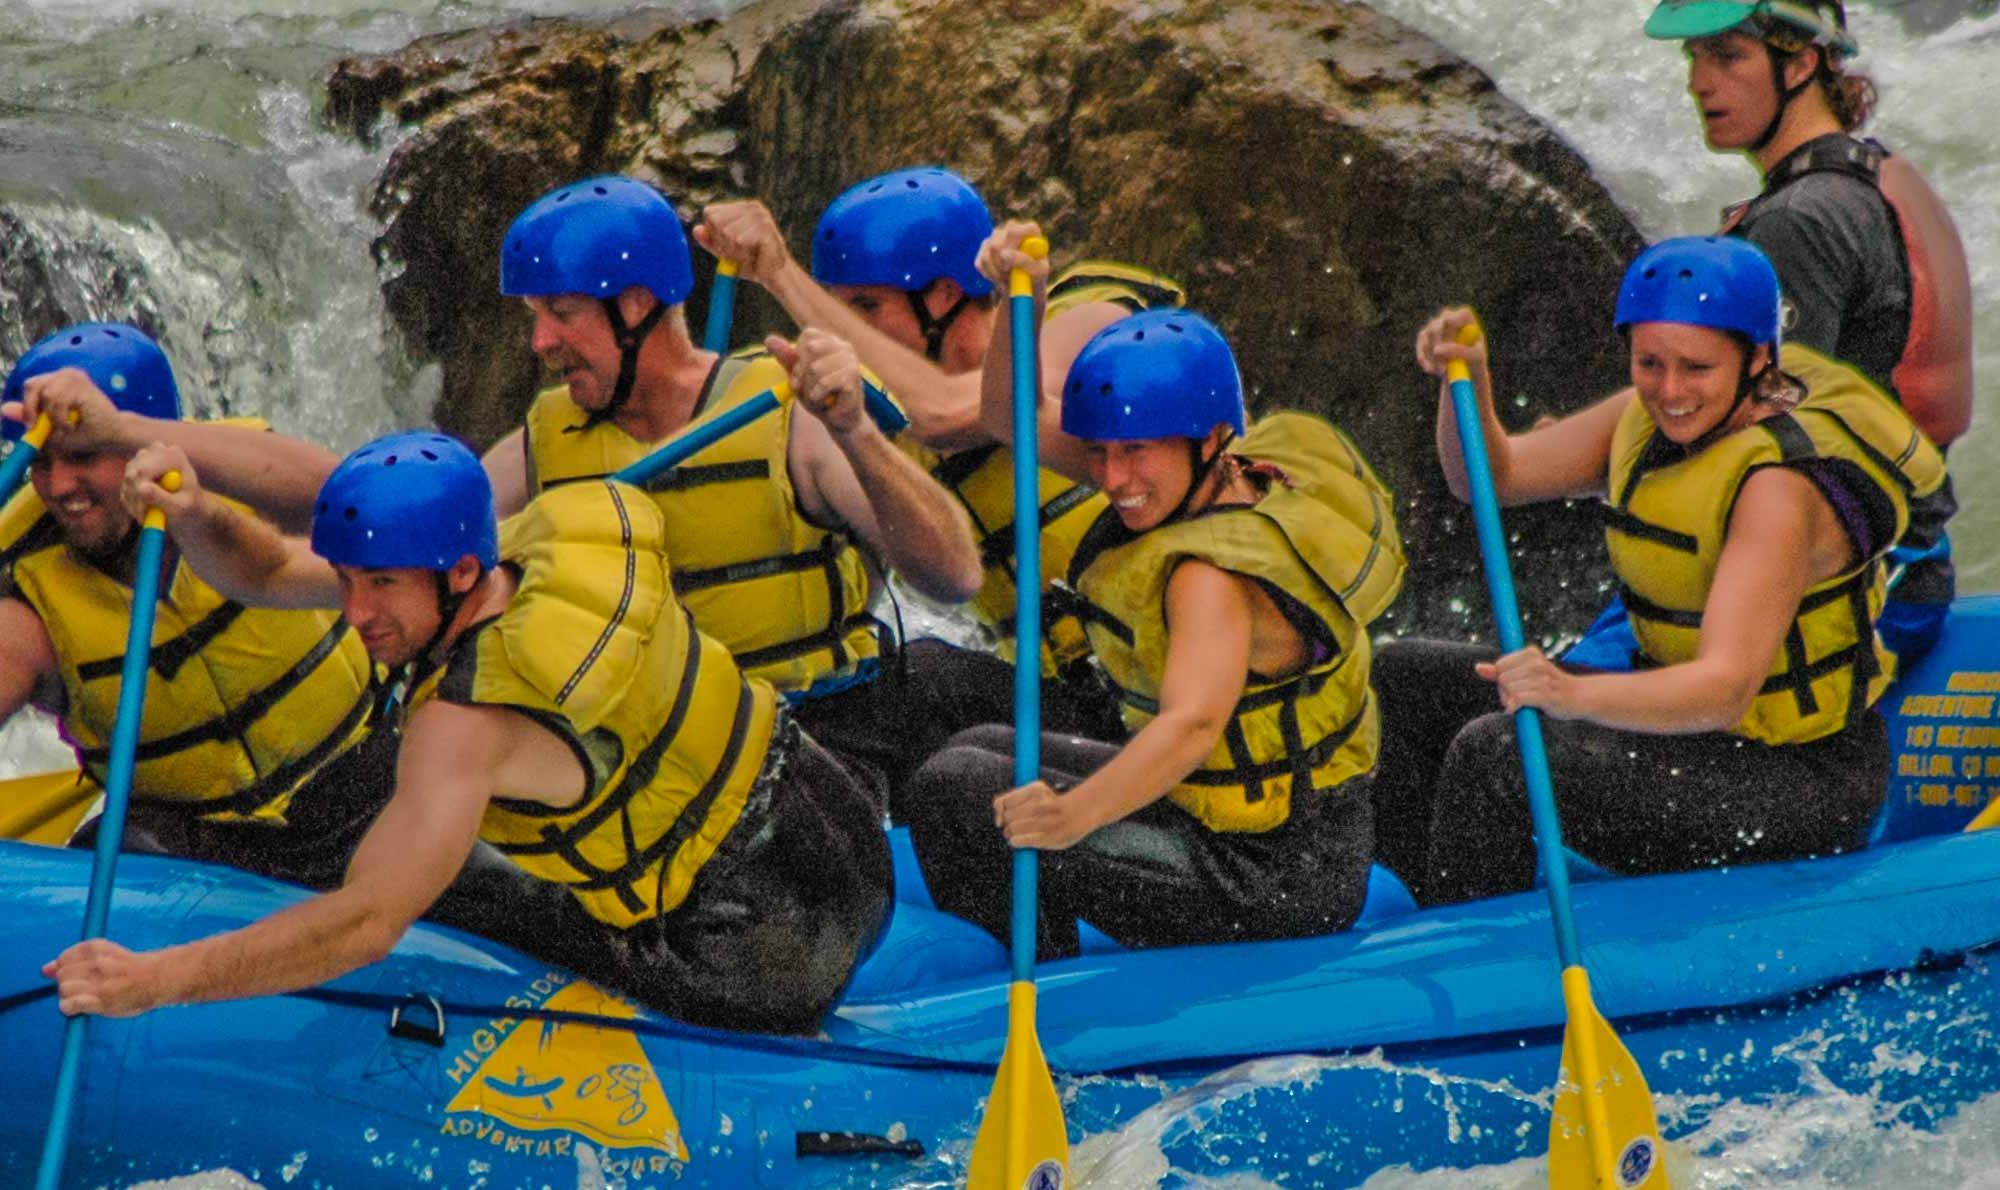 Rafting on the Clear Creek River